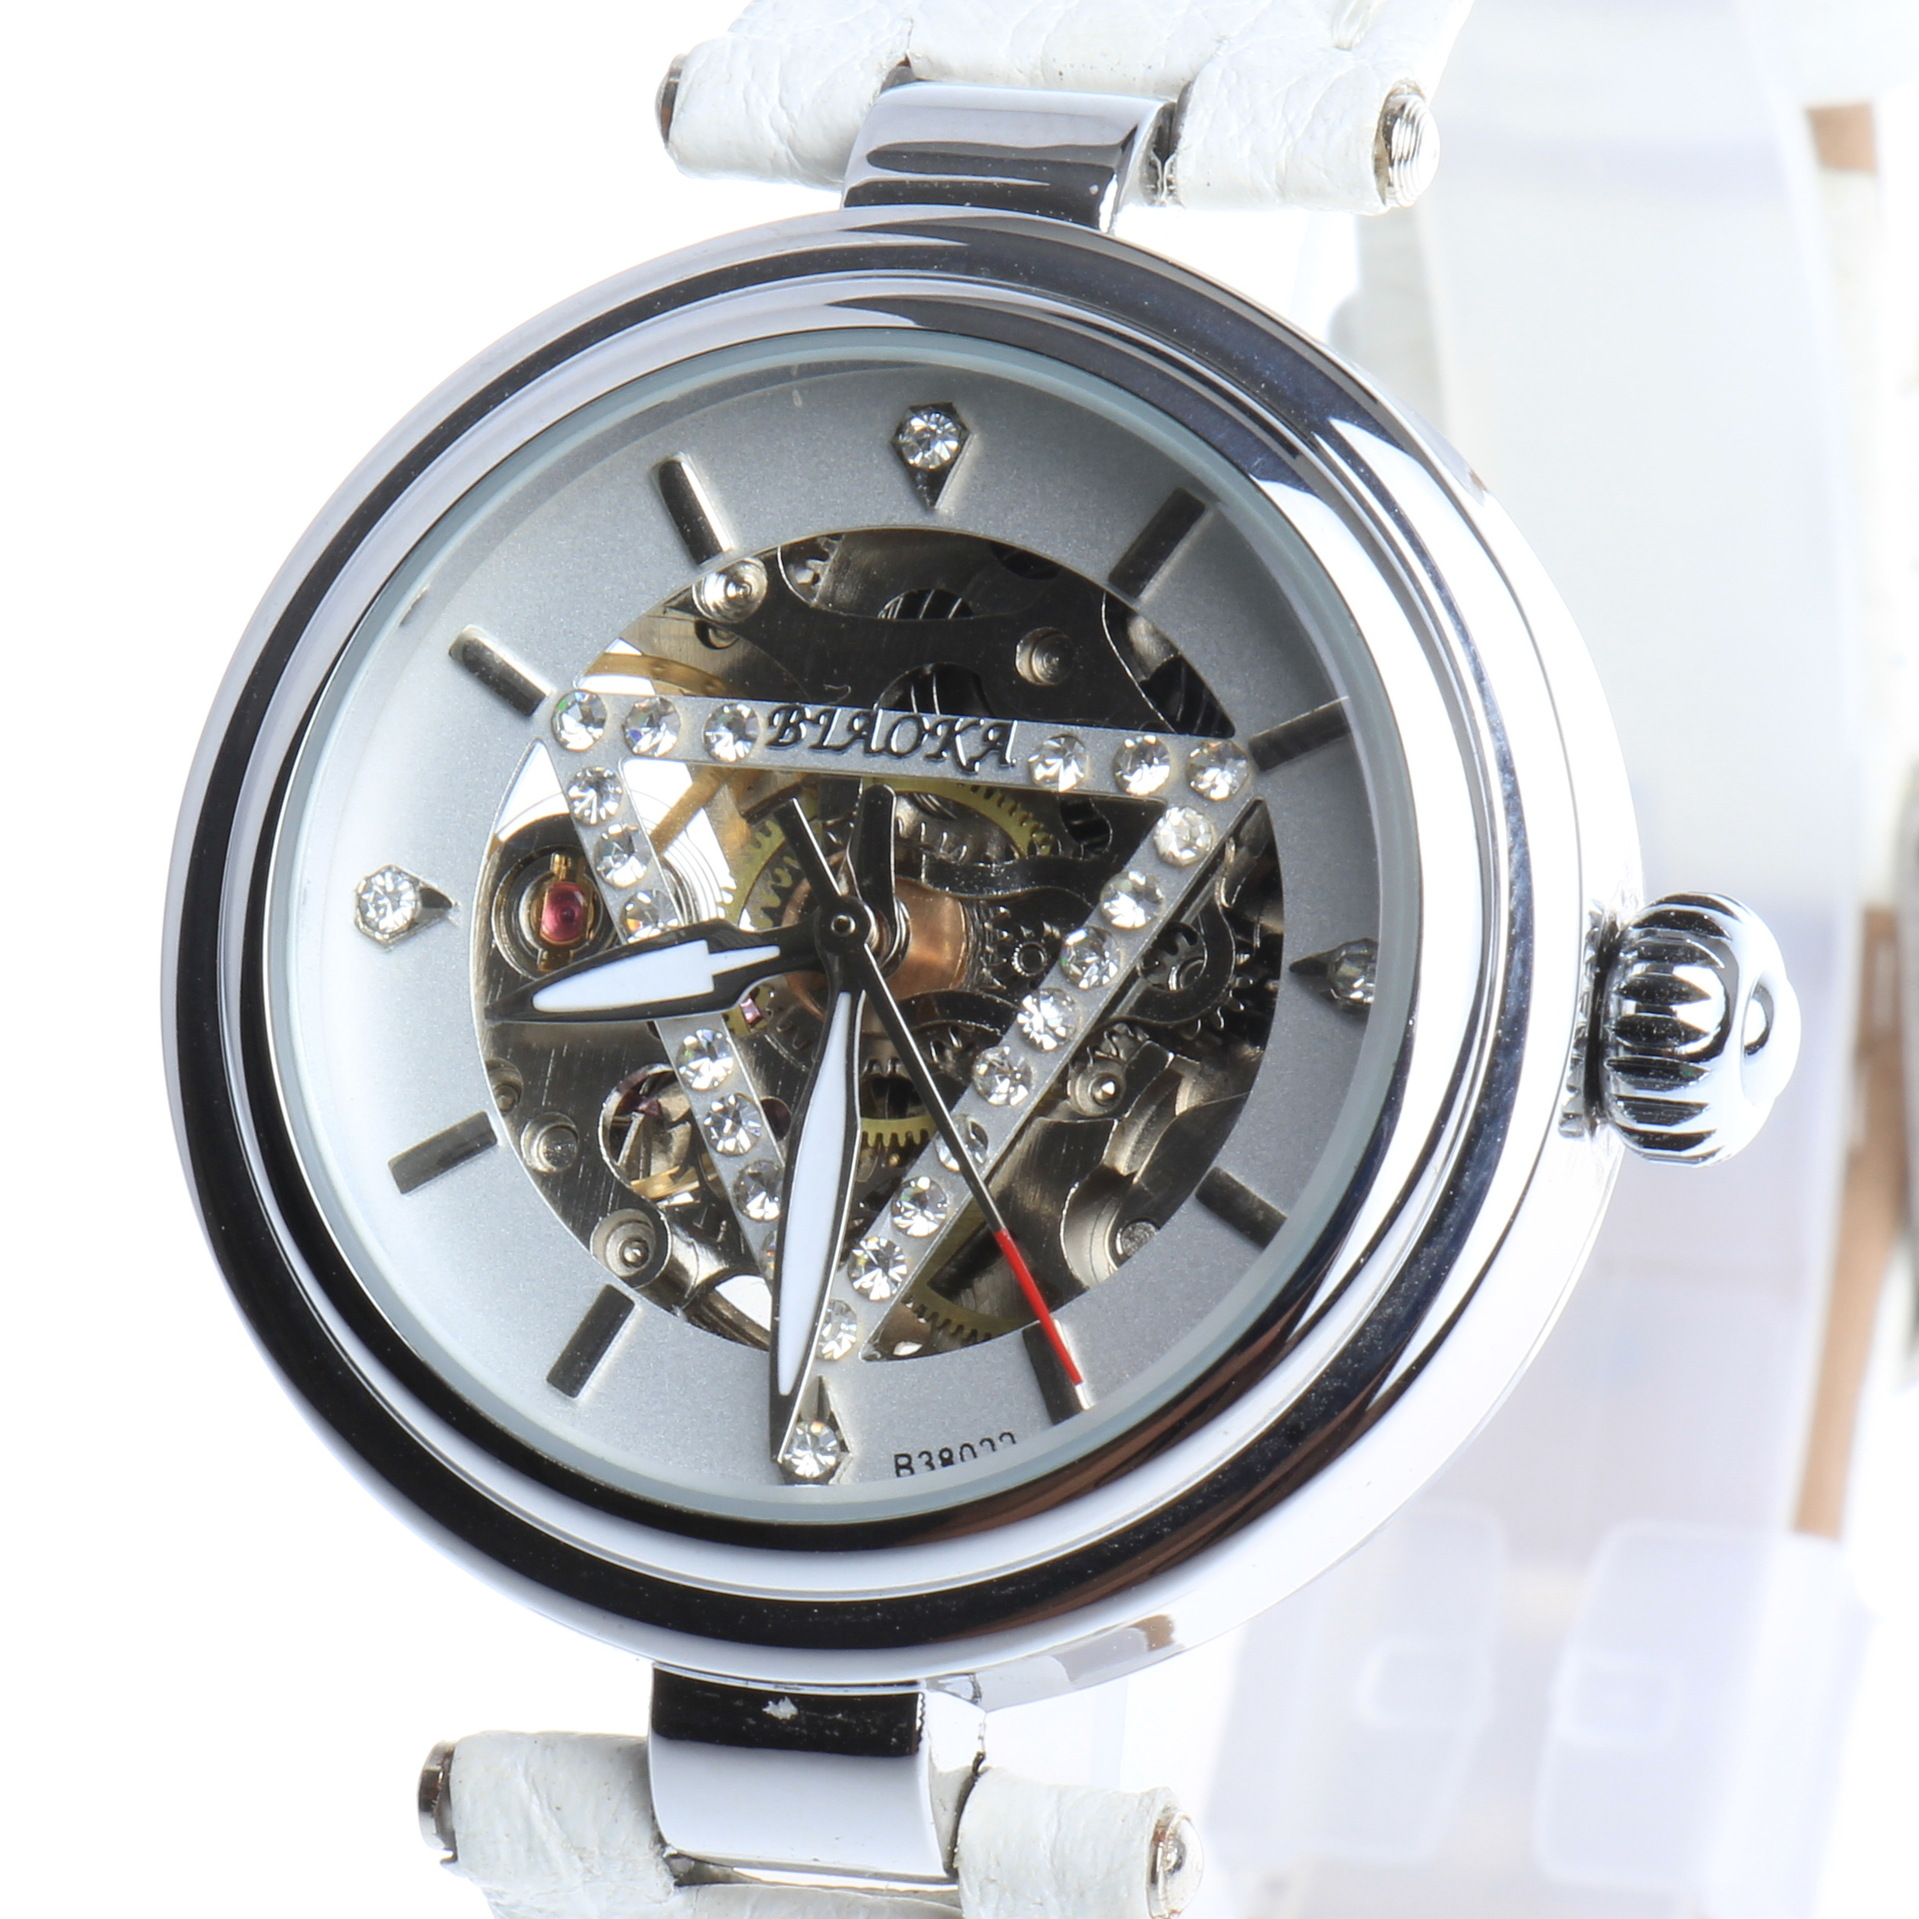 2017 NEWEST brand BIAOKA watches luxury skeleton watch automatic watches women genuine leather mechanical watches<br>